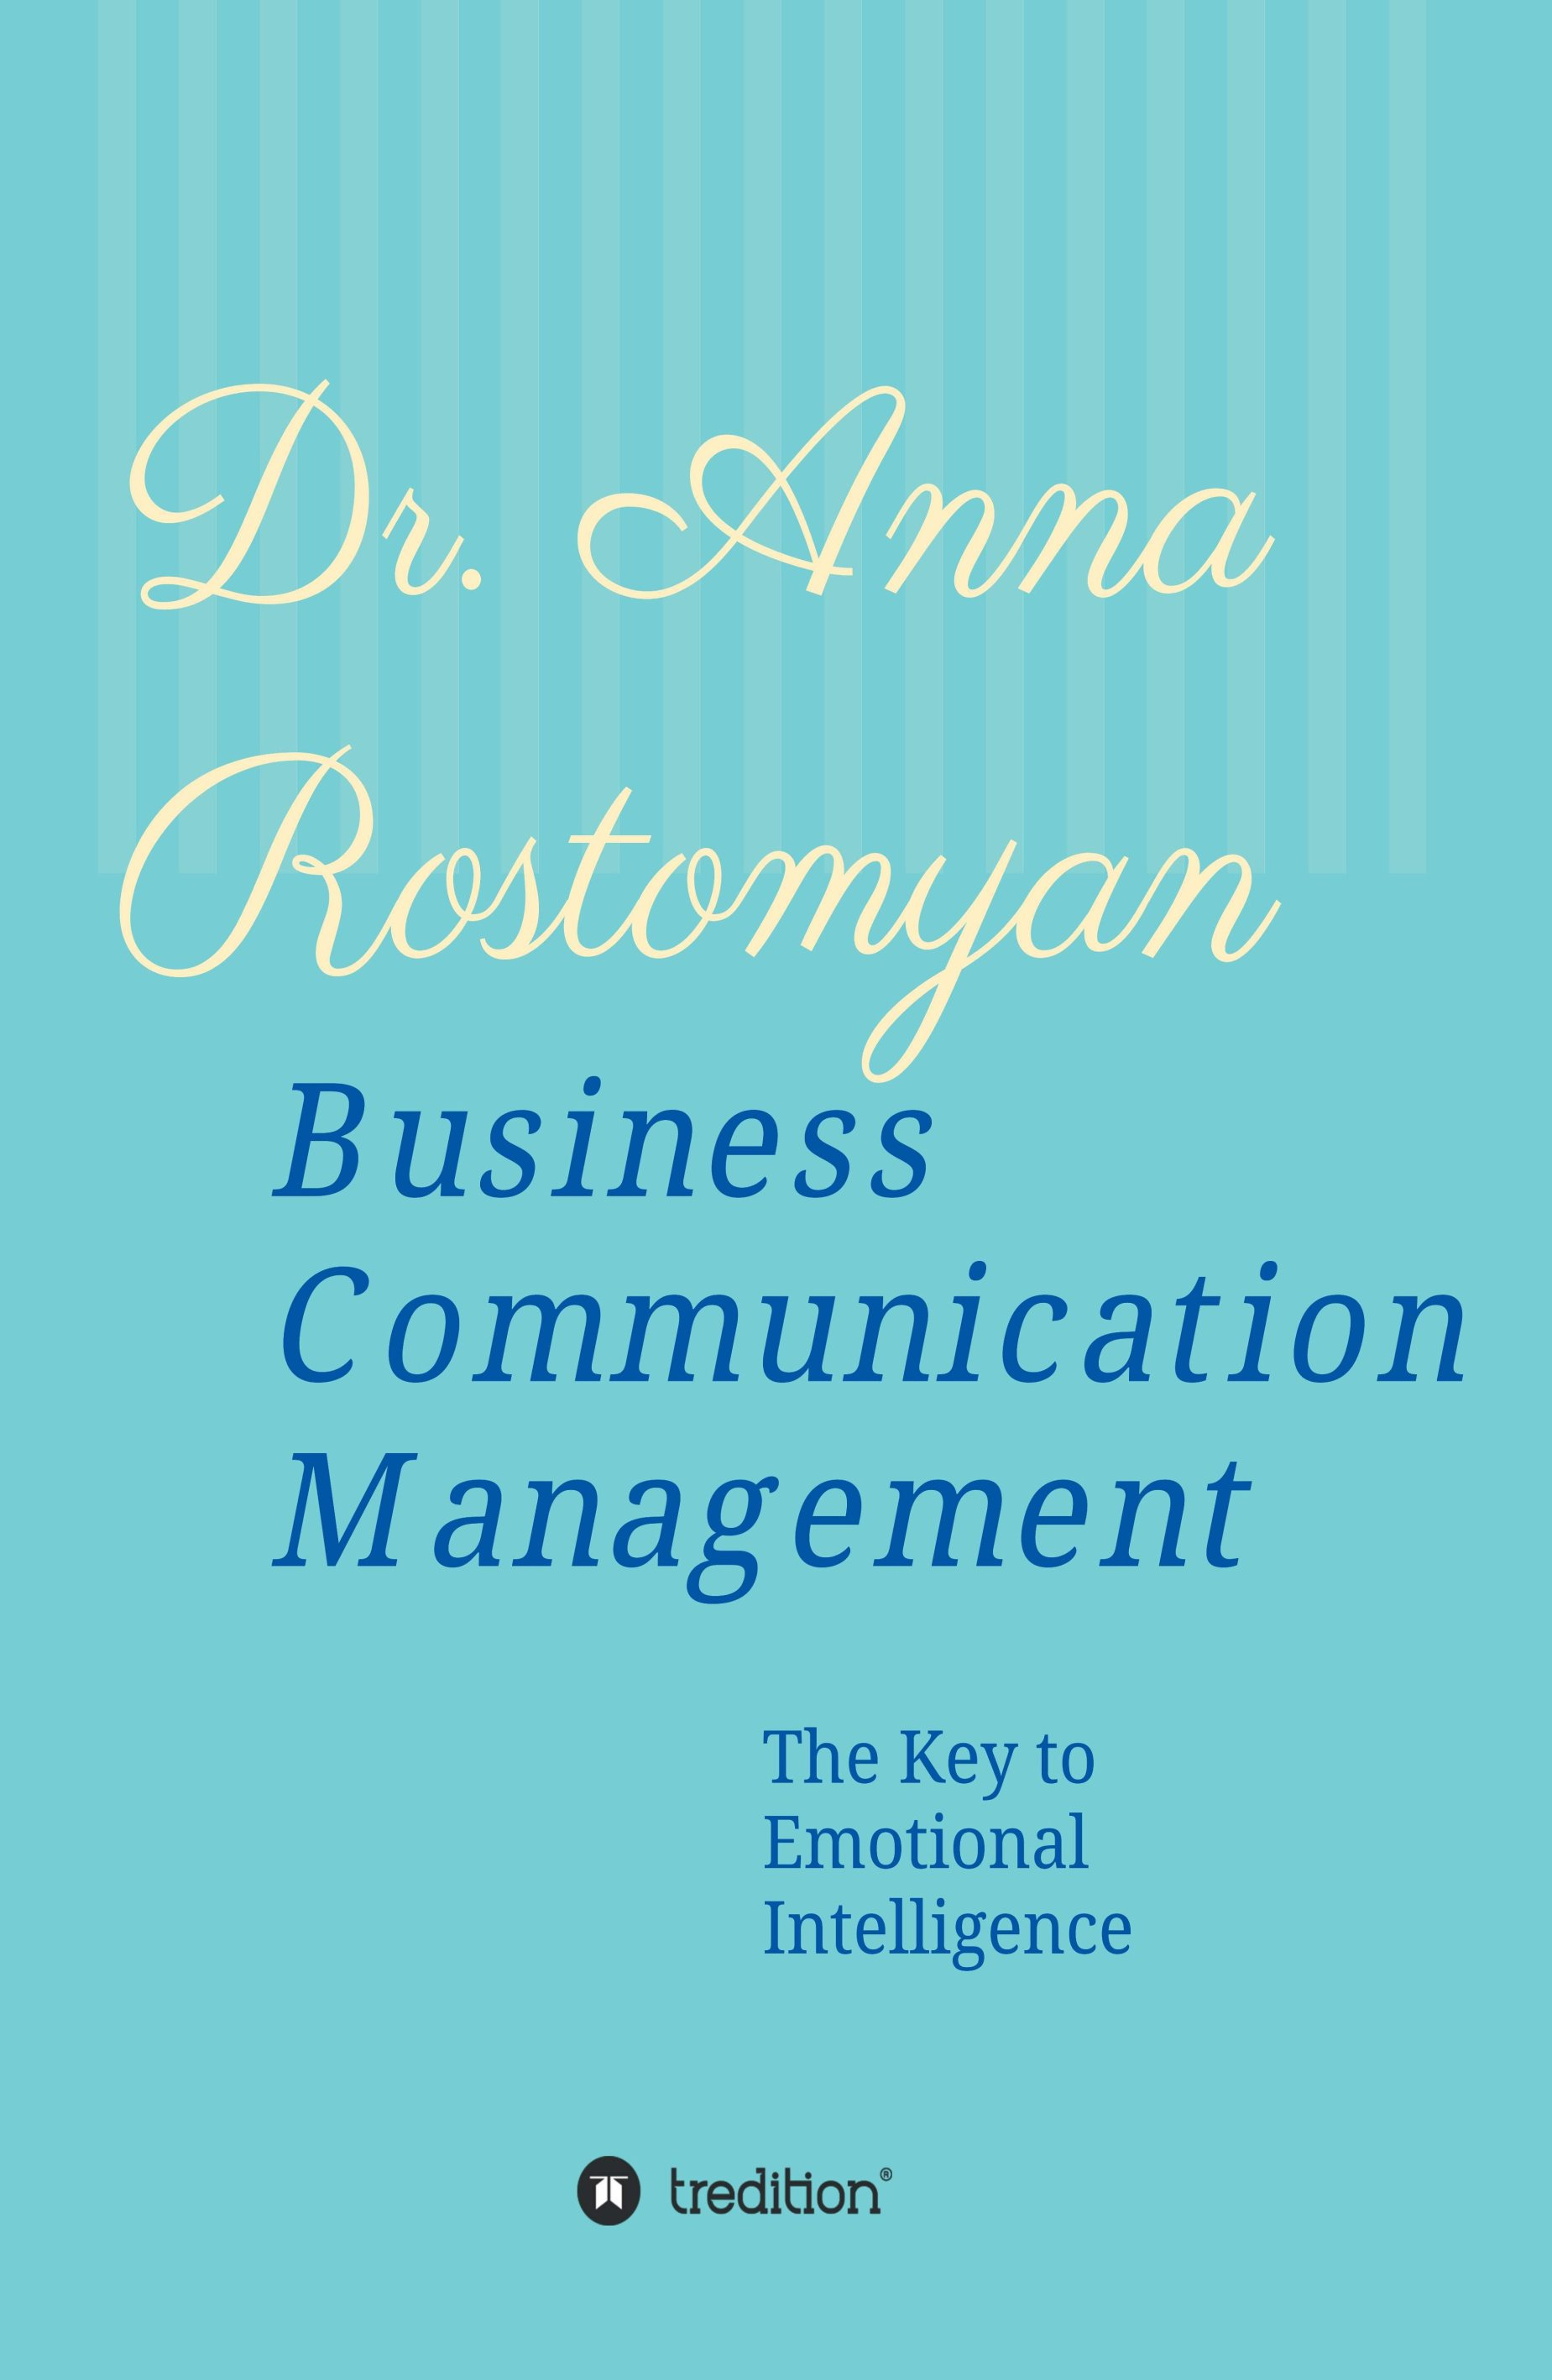 Business Communication Management - Professional advice for business leaders